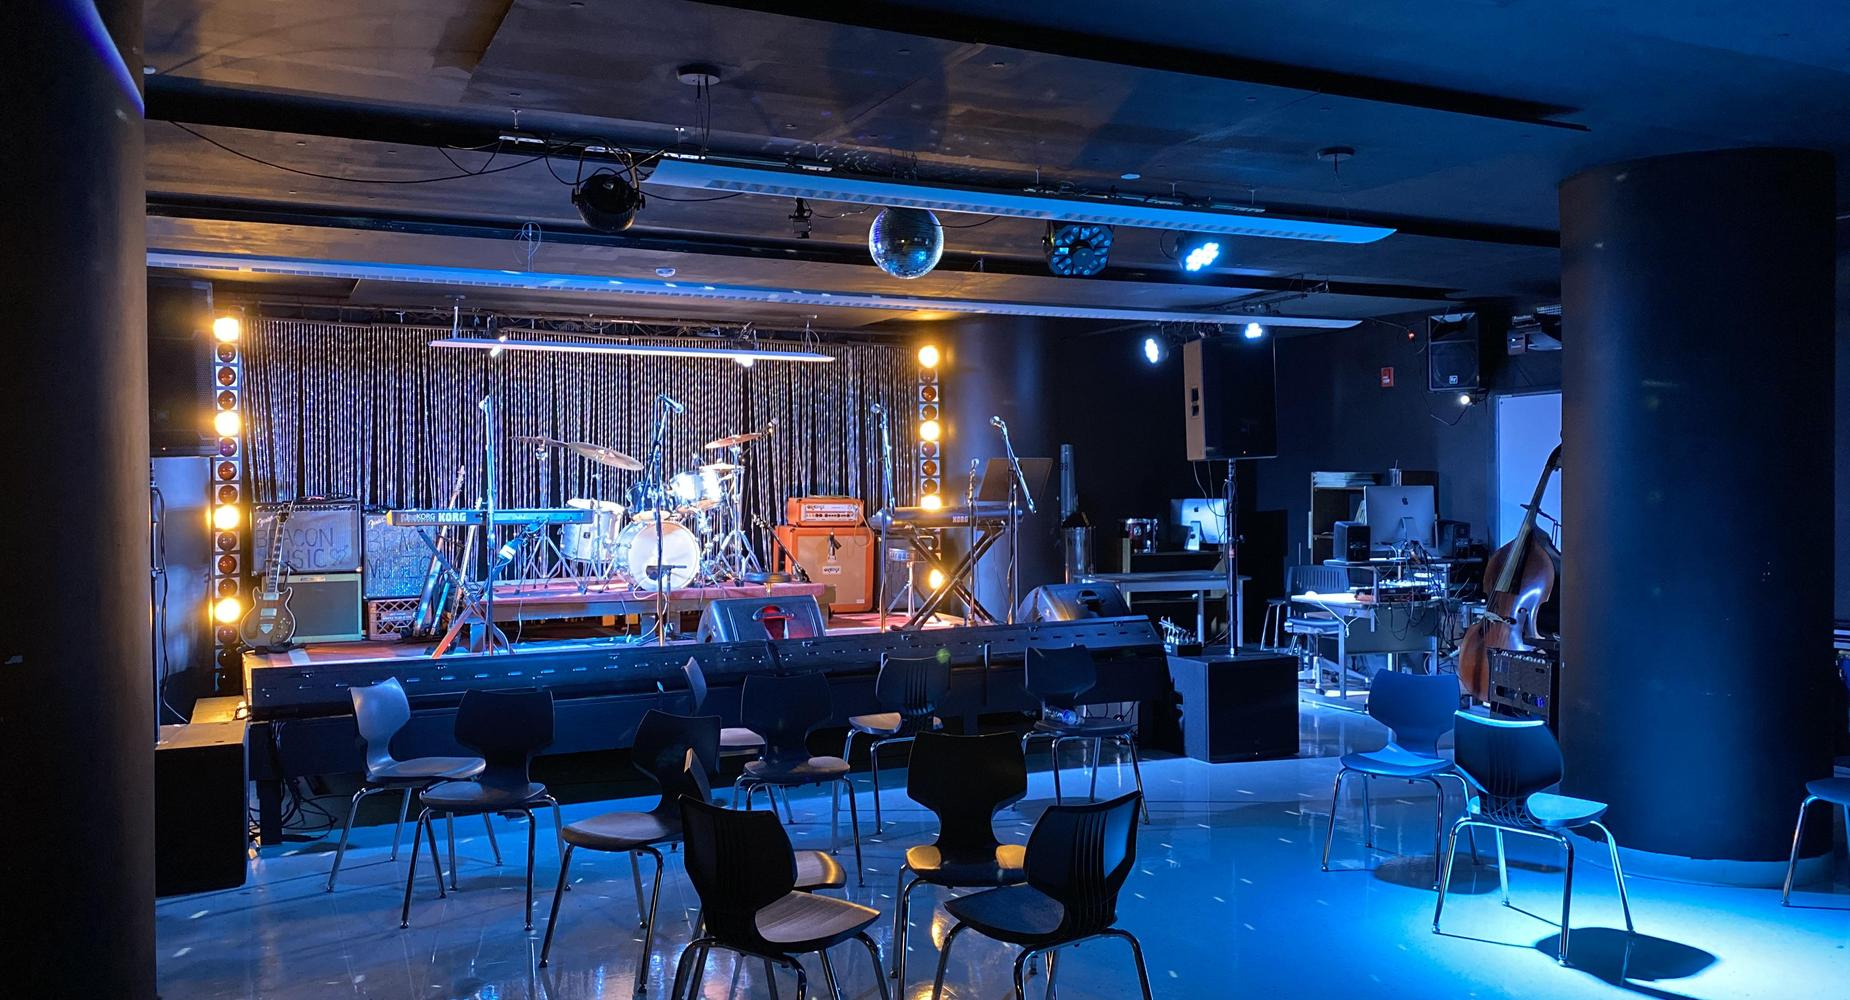 Beacon Music Studio ready for the Battle of the Bands